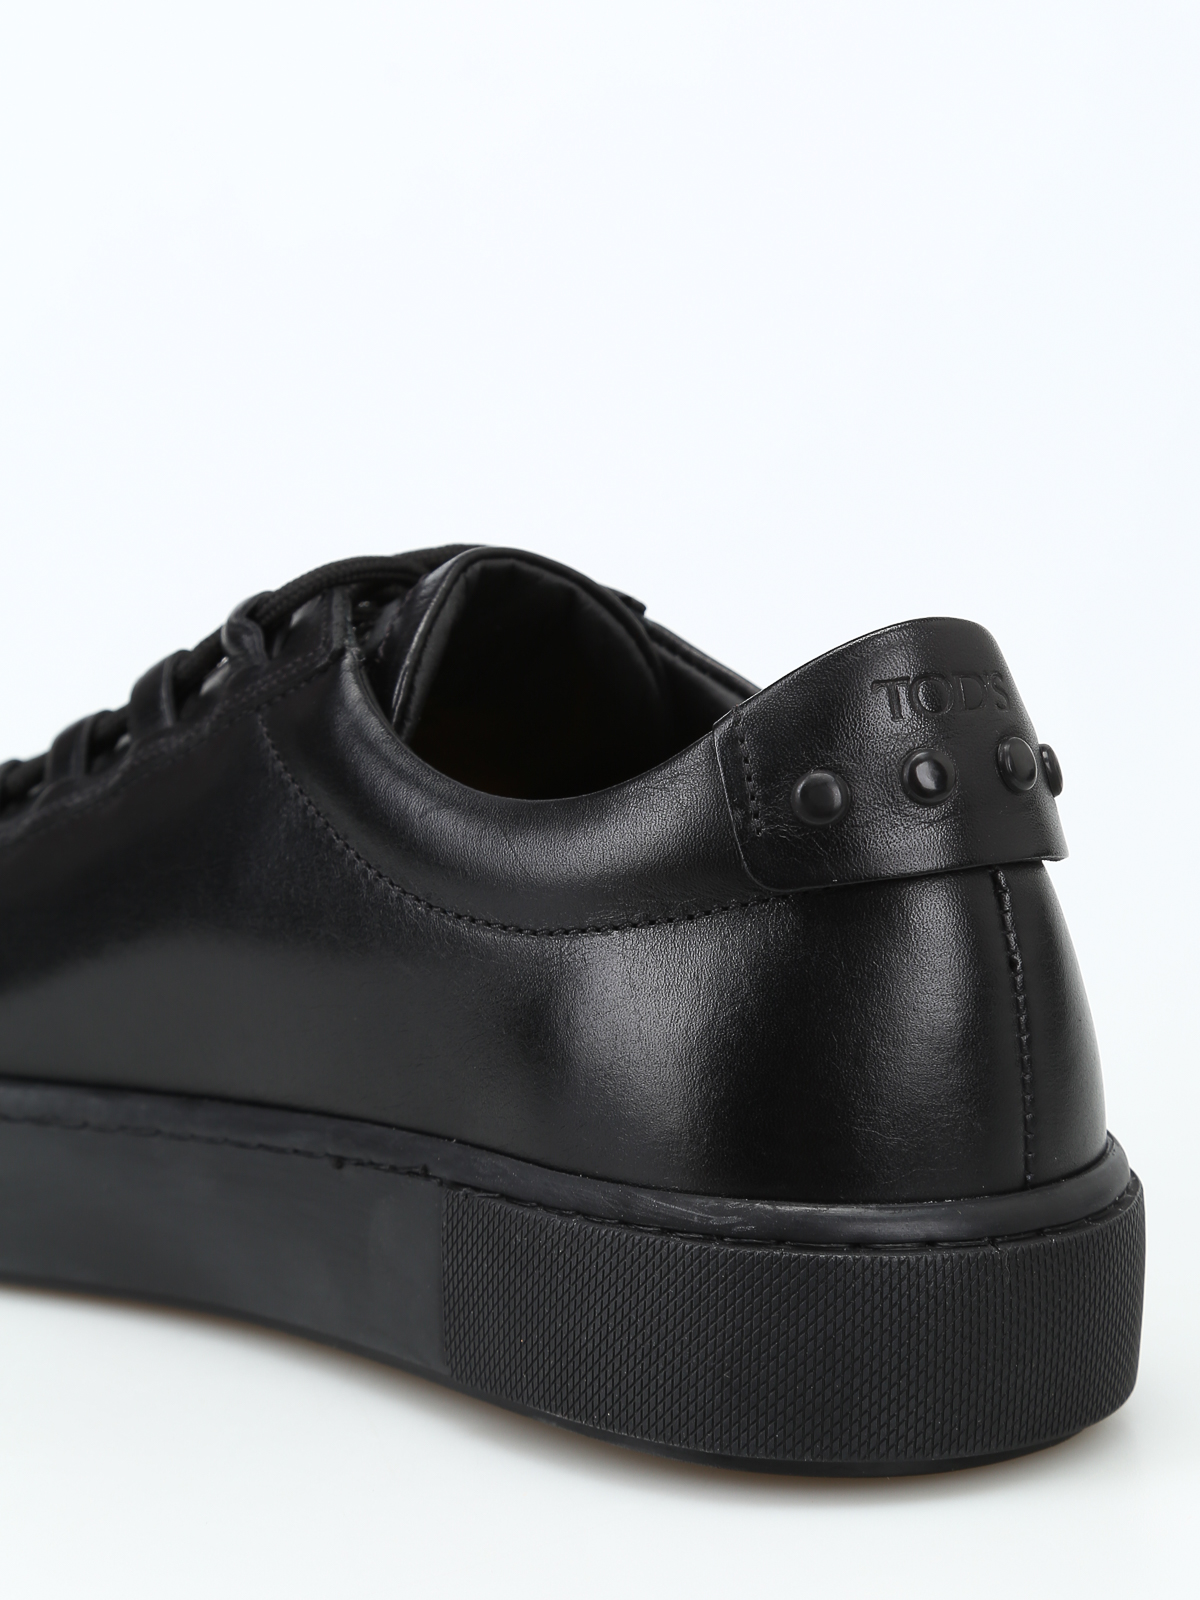 Black leather sneakers with gommini